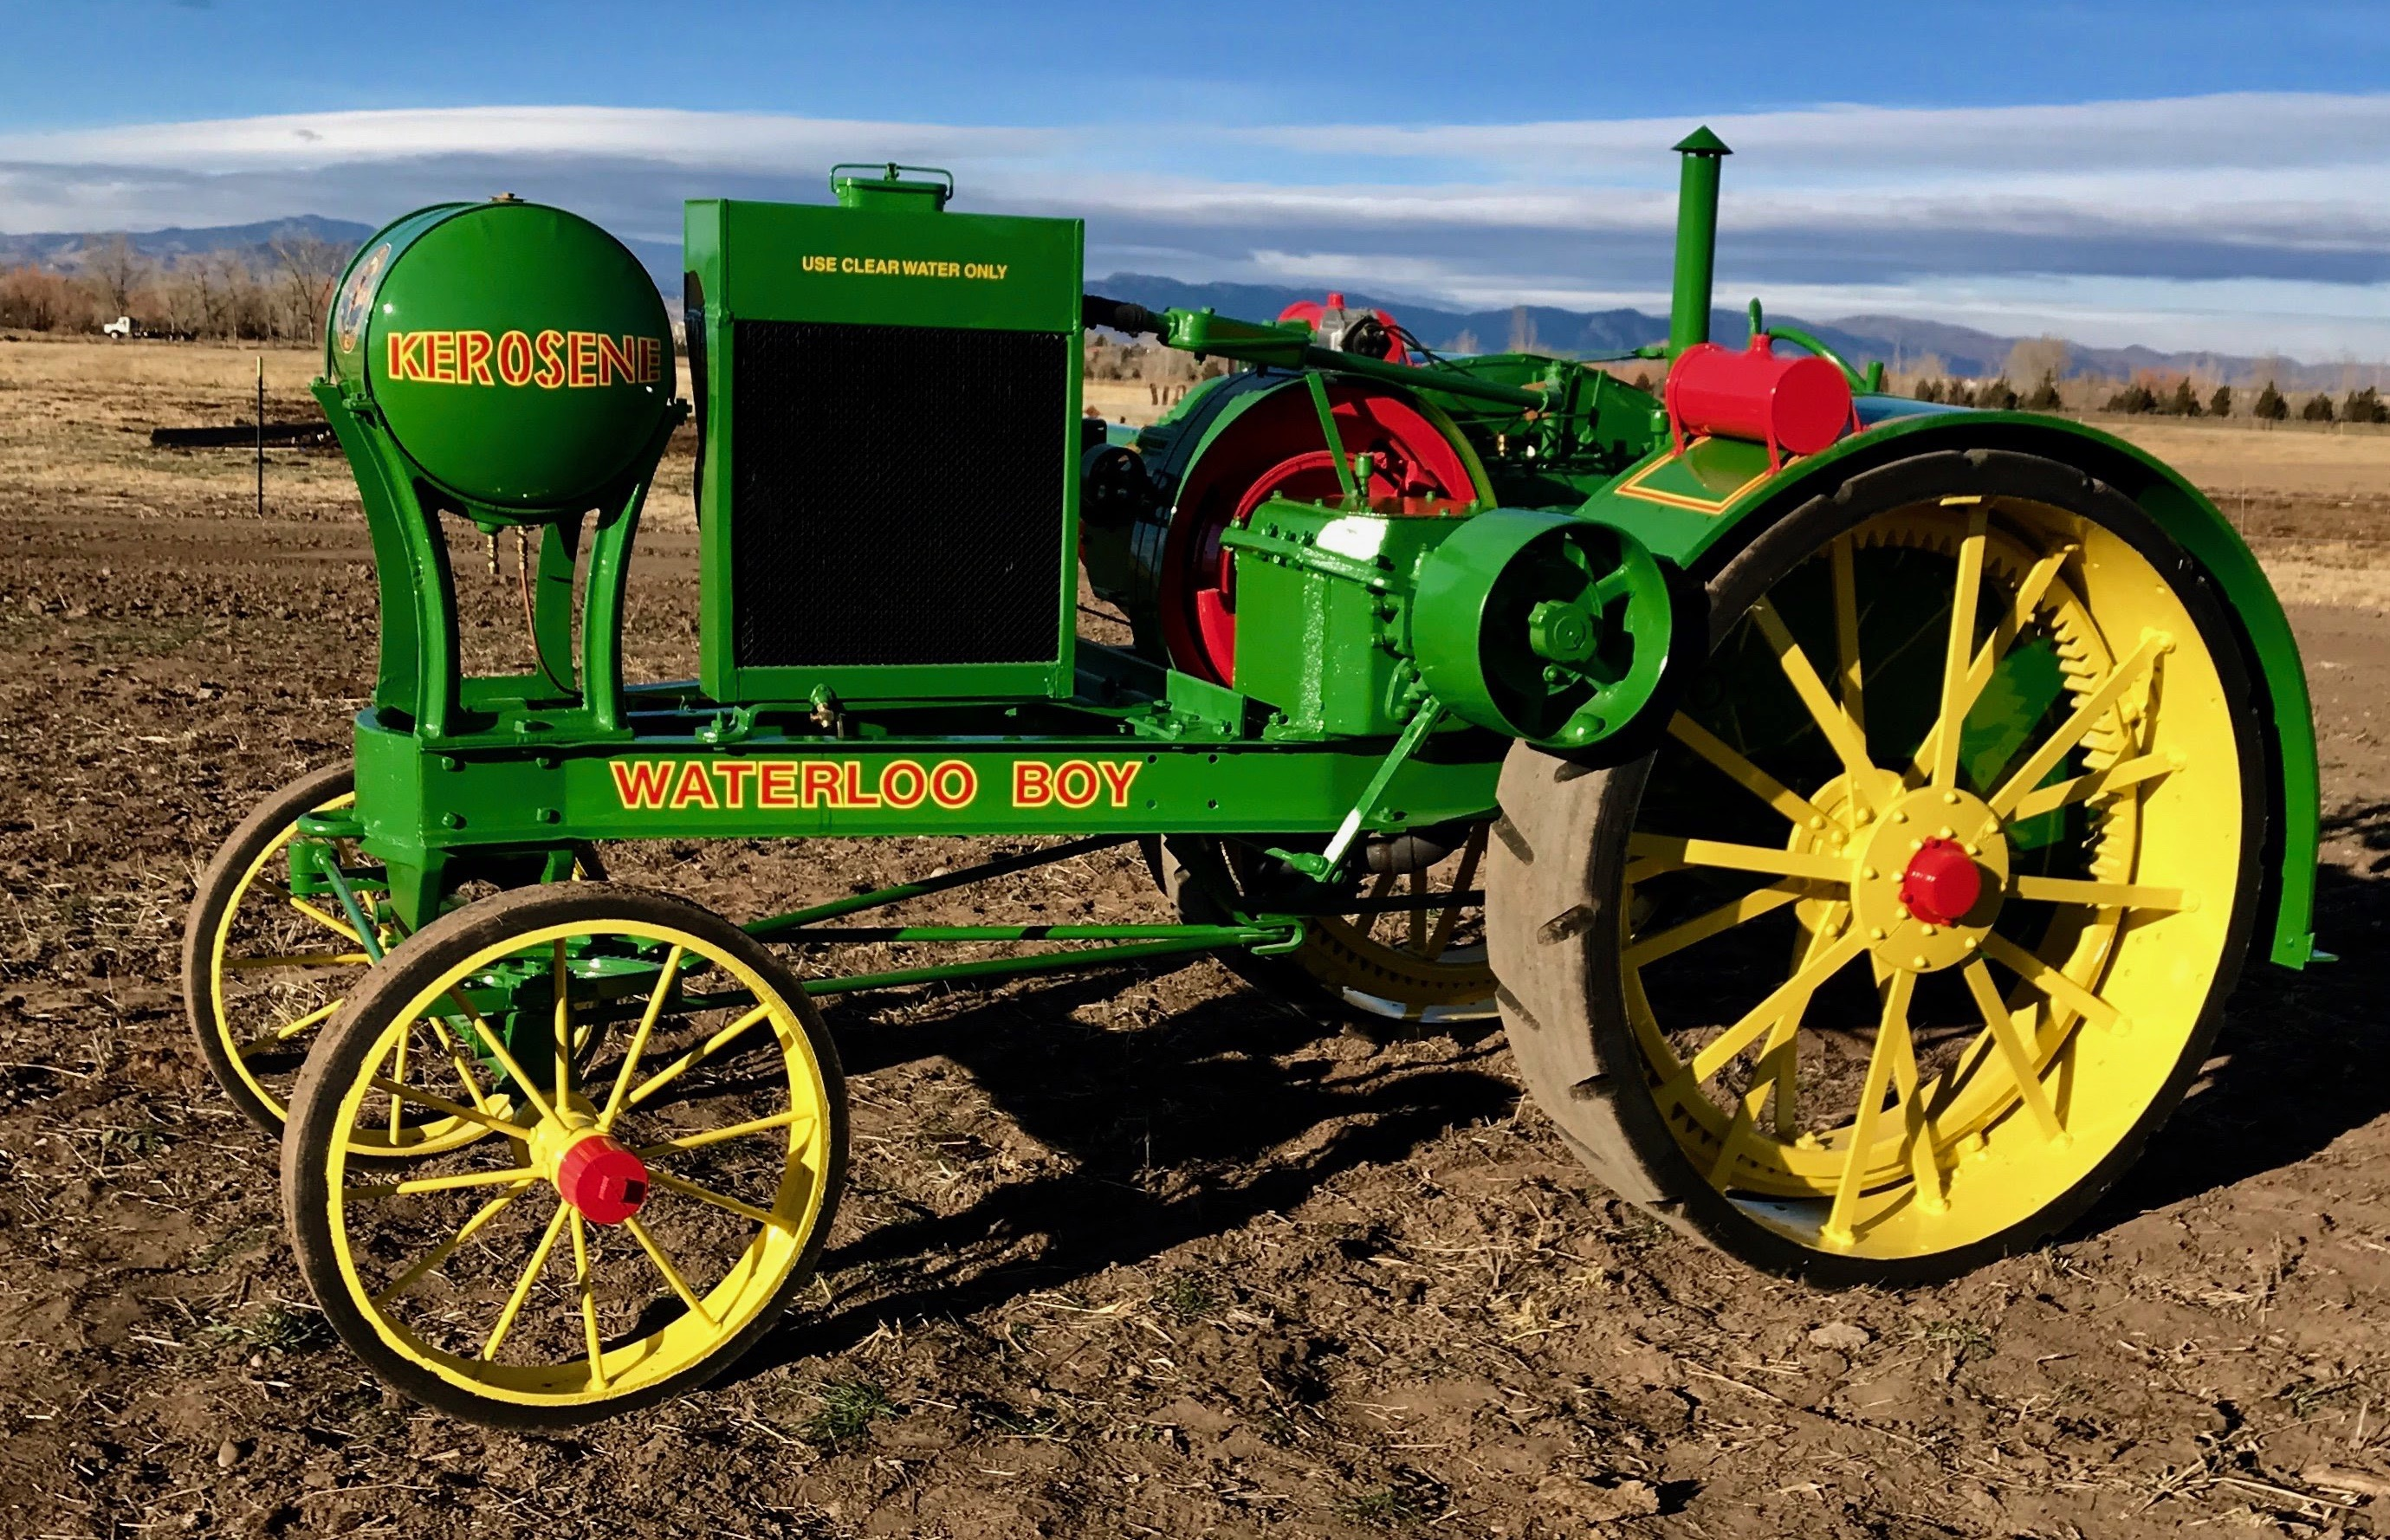 clydesdale, Clydesdale joins vintage tractors at Gone Farmin' sale in Iowa, ClassicCars.com Journal